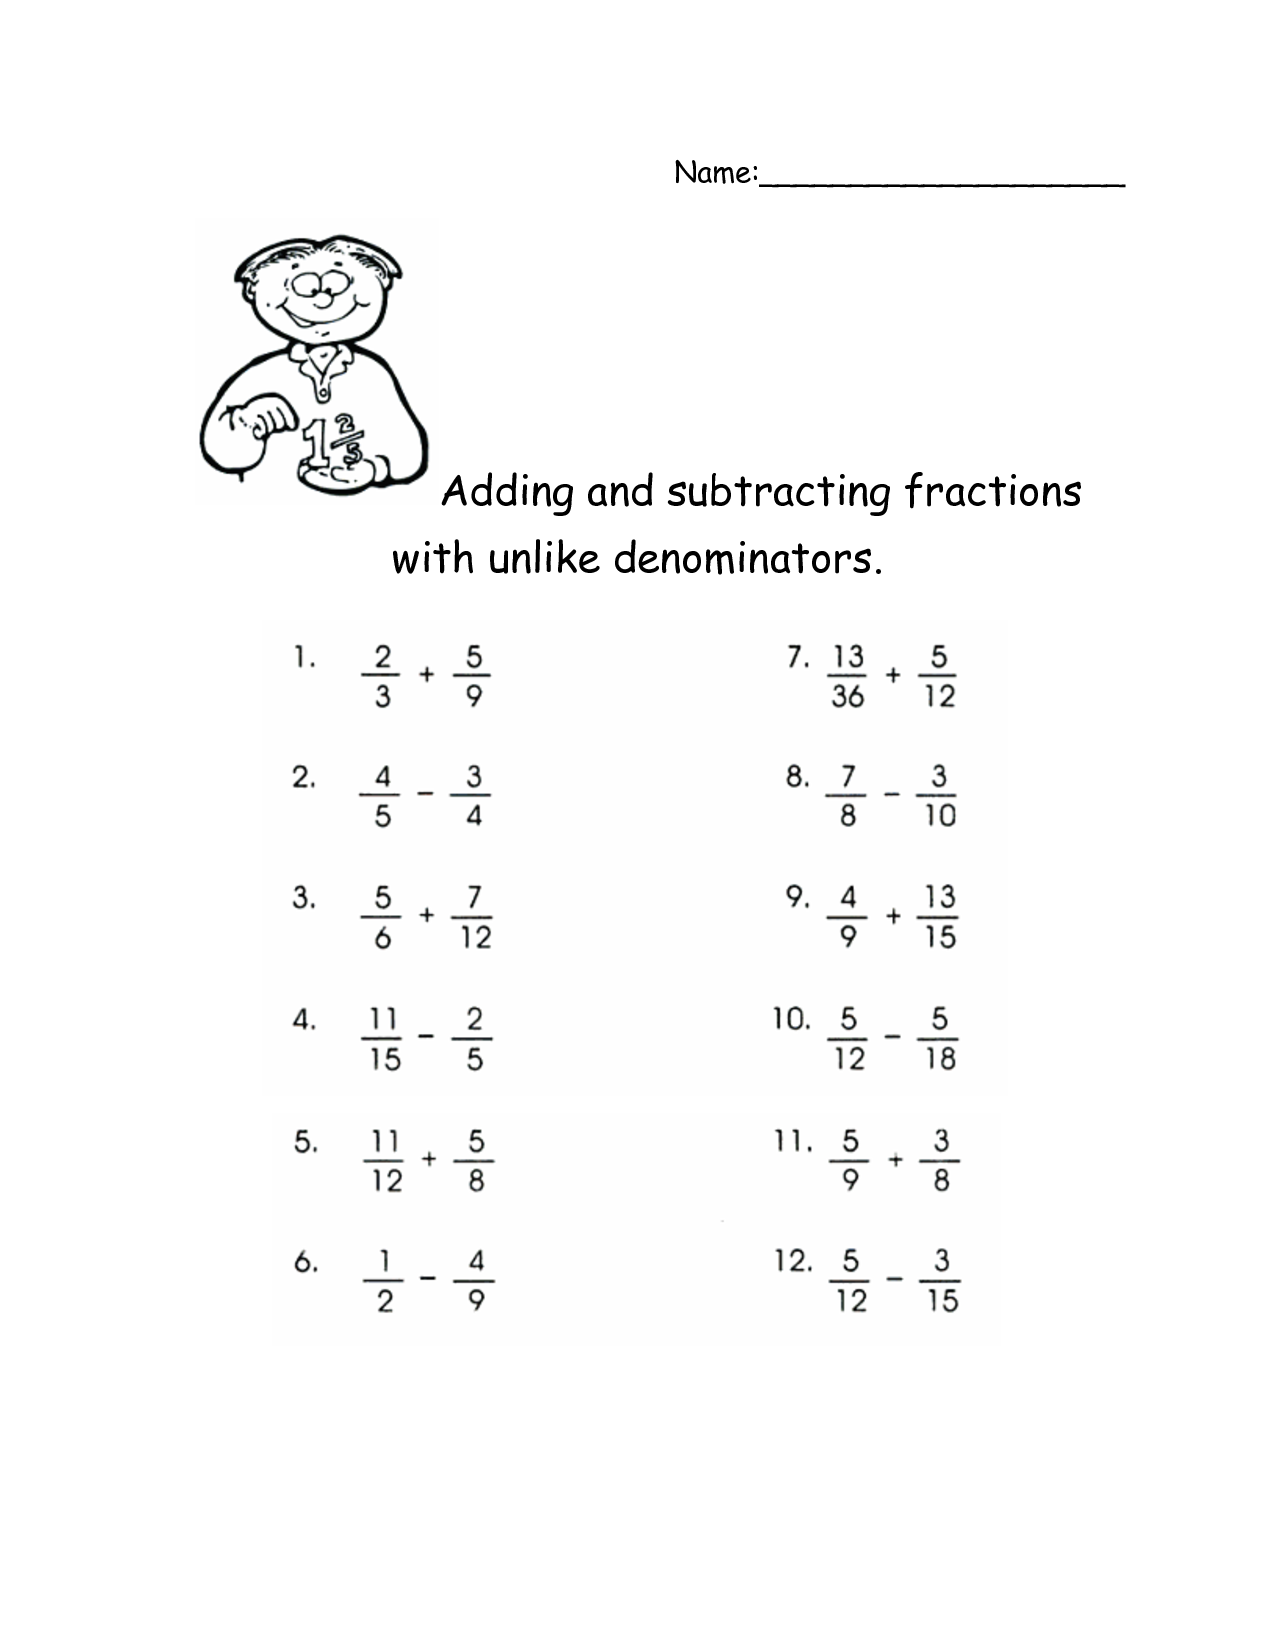 Worksheet Adding And Subtracting Fractions With Unlike Denominators Worksheets math fractions worksheets and on pinterest adding subtracting with unlike denominators activities